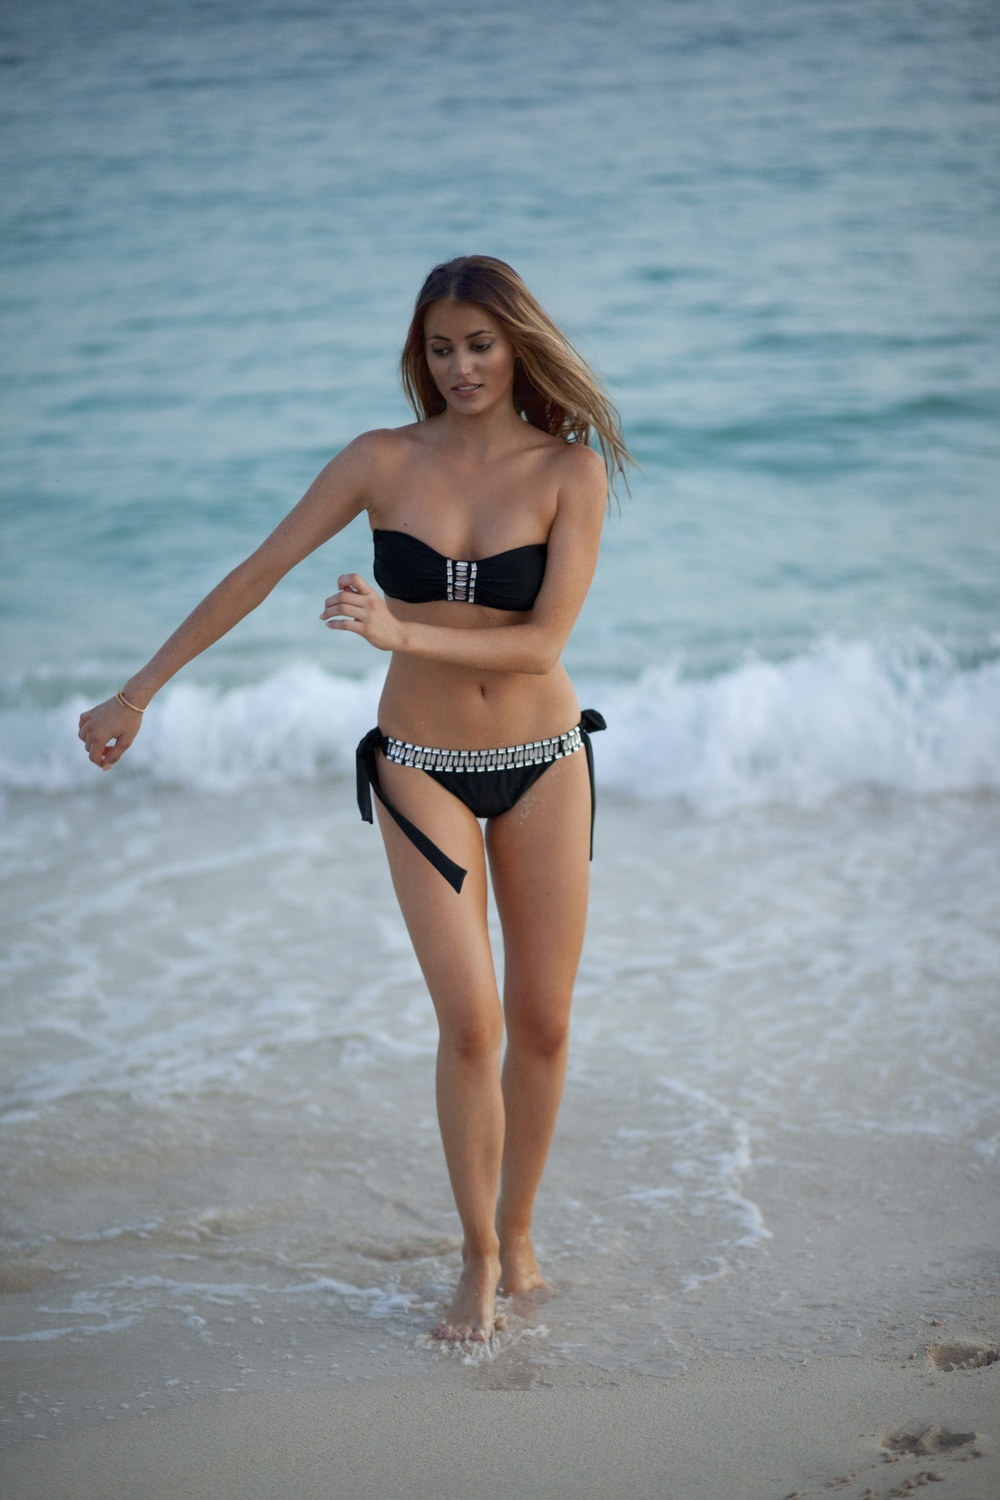 photo (3) Fashion Blogger, Maureen Sophie Kragt photographed on Mullet Bay Beach in St Maarten, caribbean. She is wearing a black embellished Ana Azur bikini, in a S/M size.